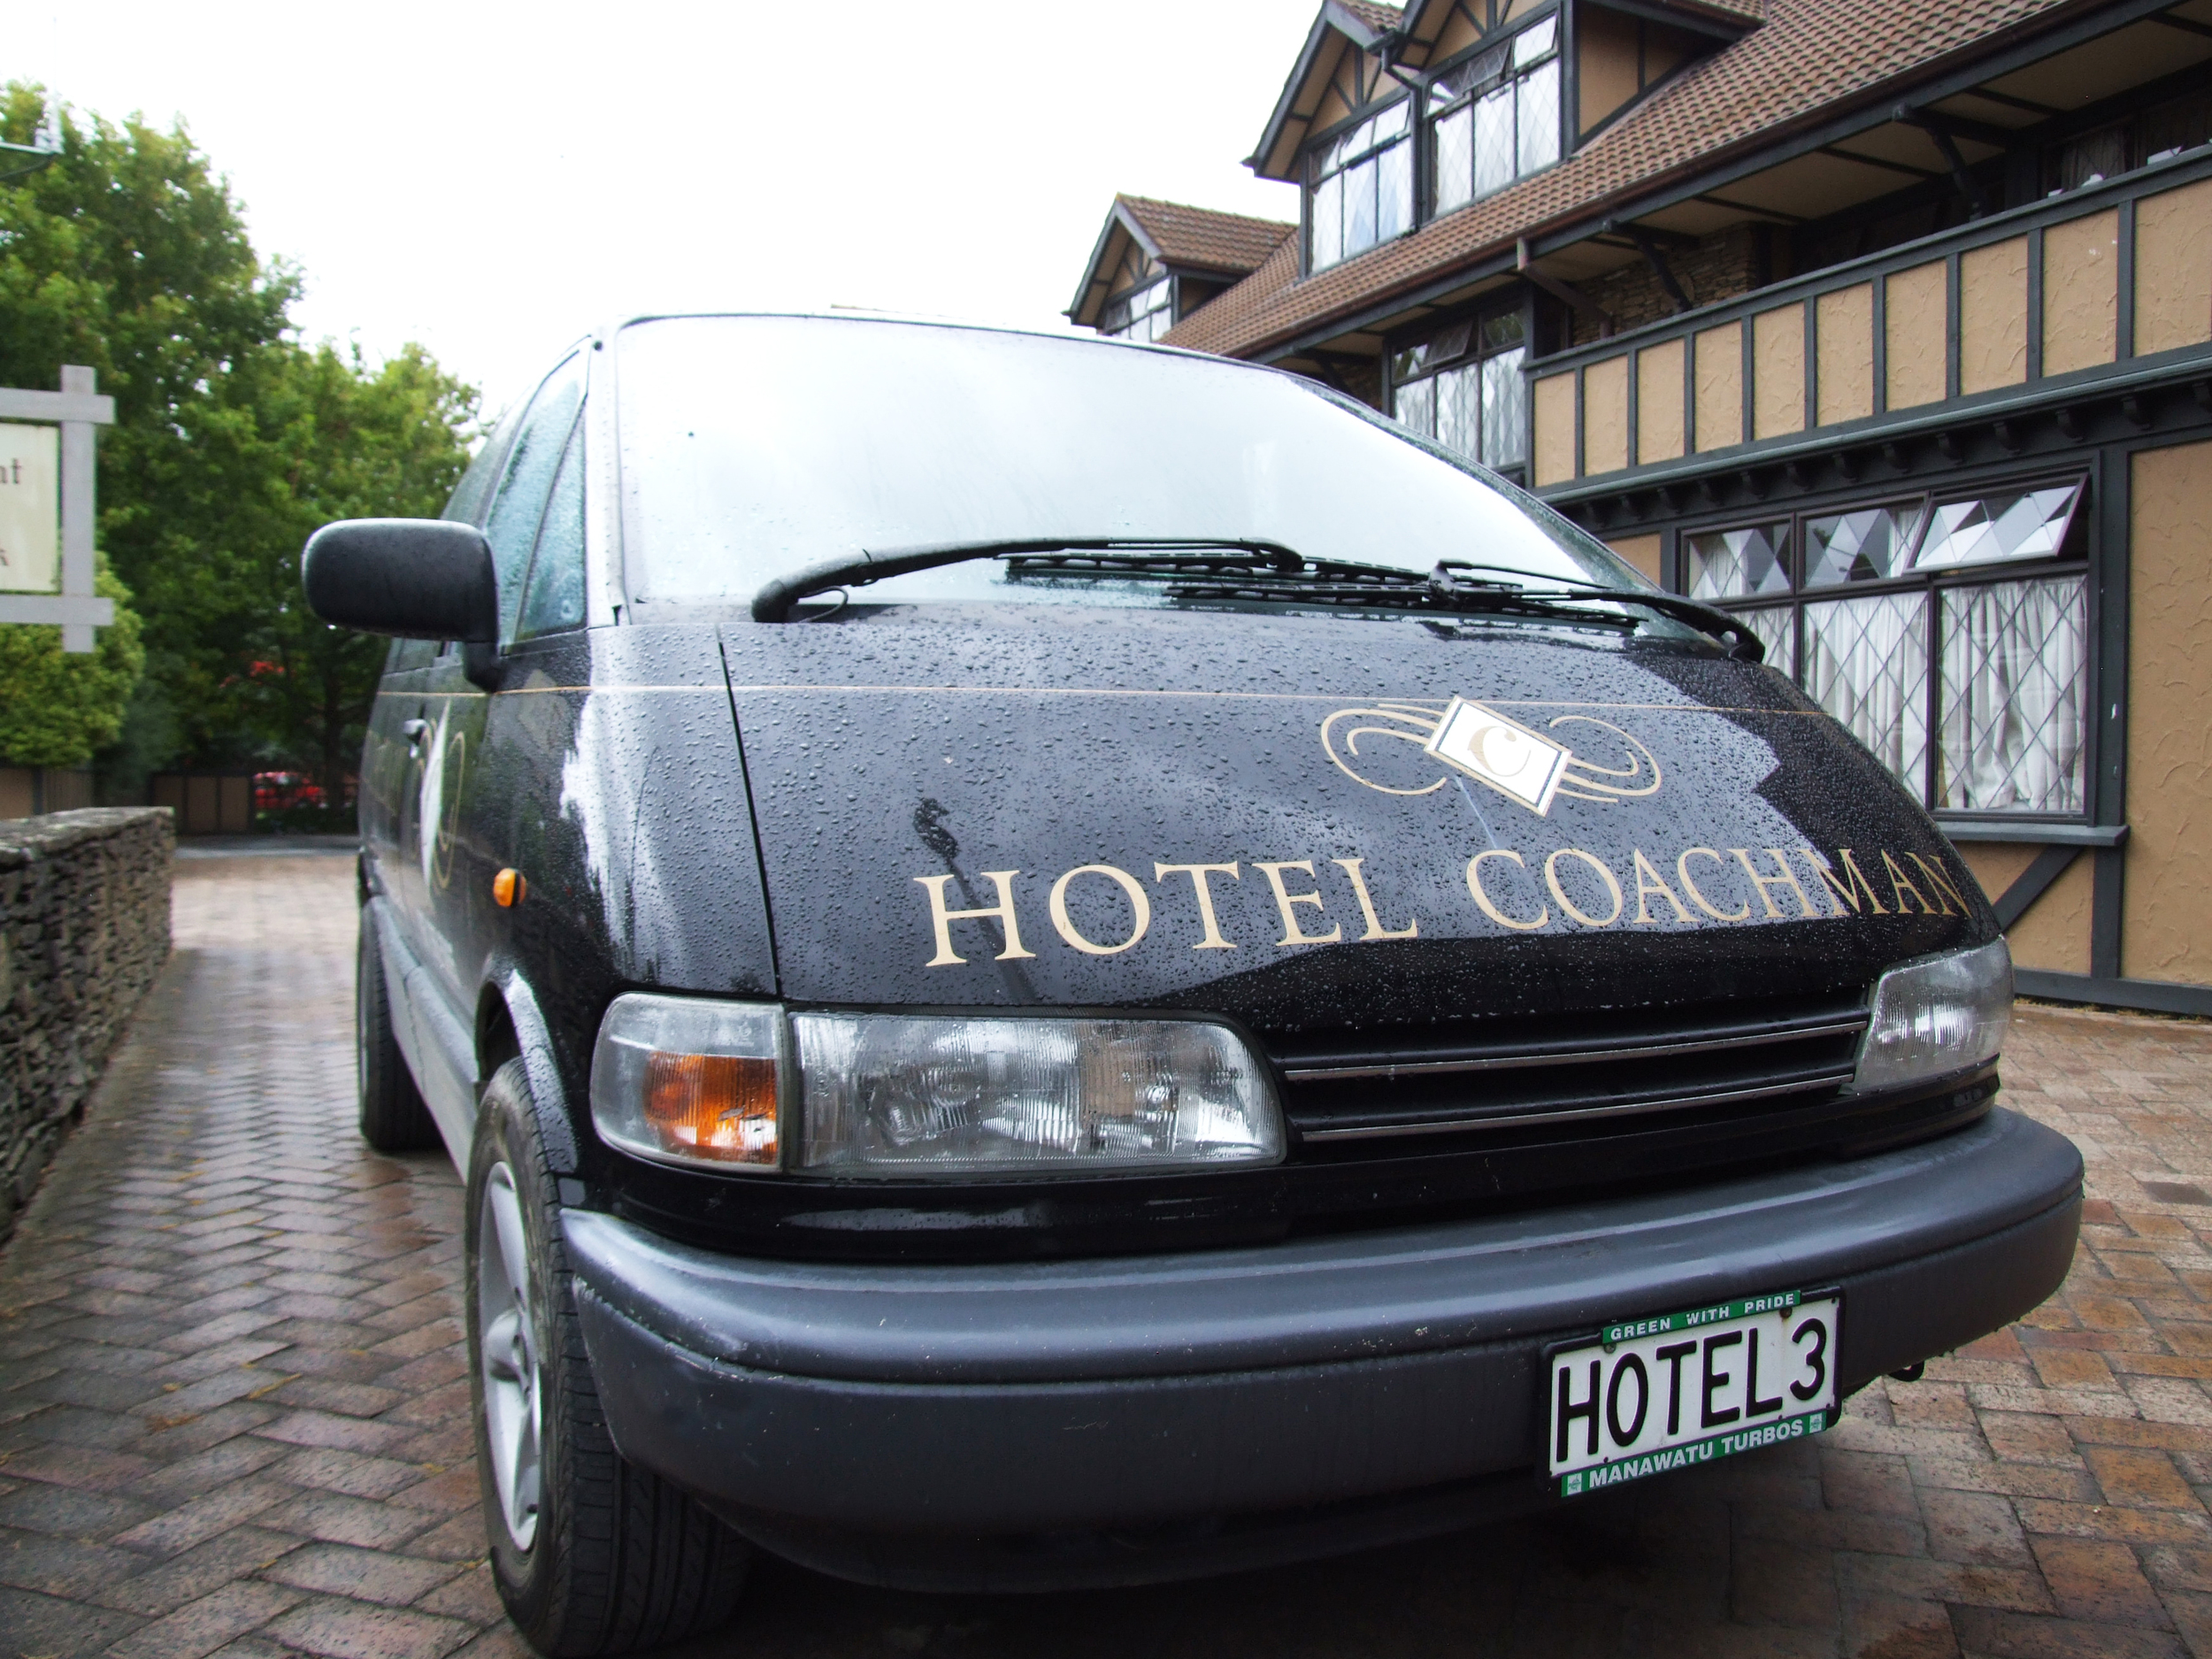 Hotel Coachman Courtesy Coach